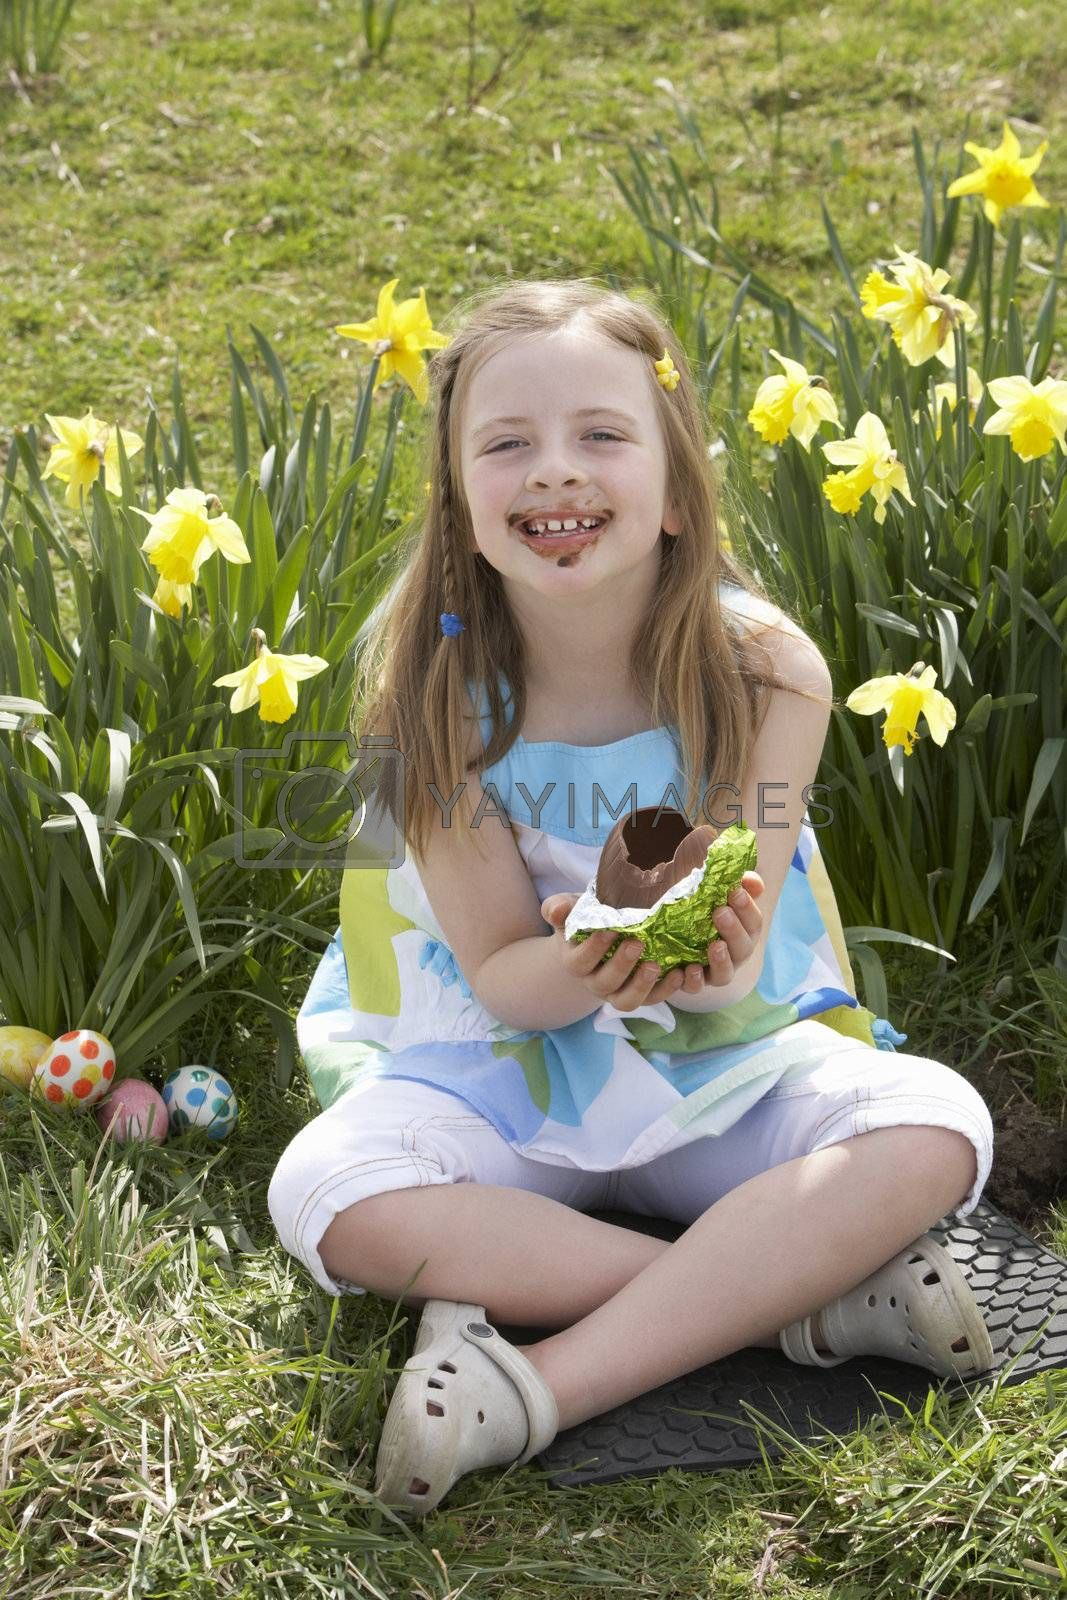 Royalty free image of Girl Eating Chocolate Egg On Easter Egg Hunt In Daffodil Field by omg_images